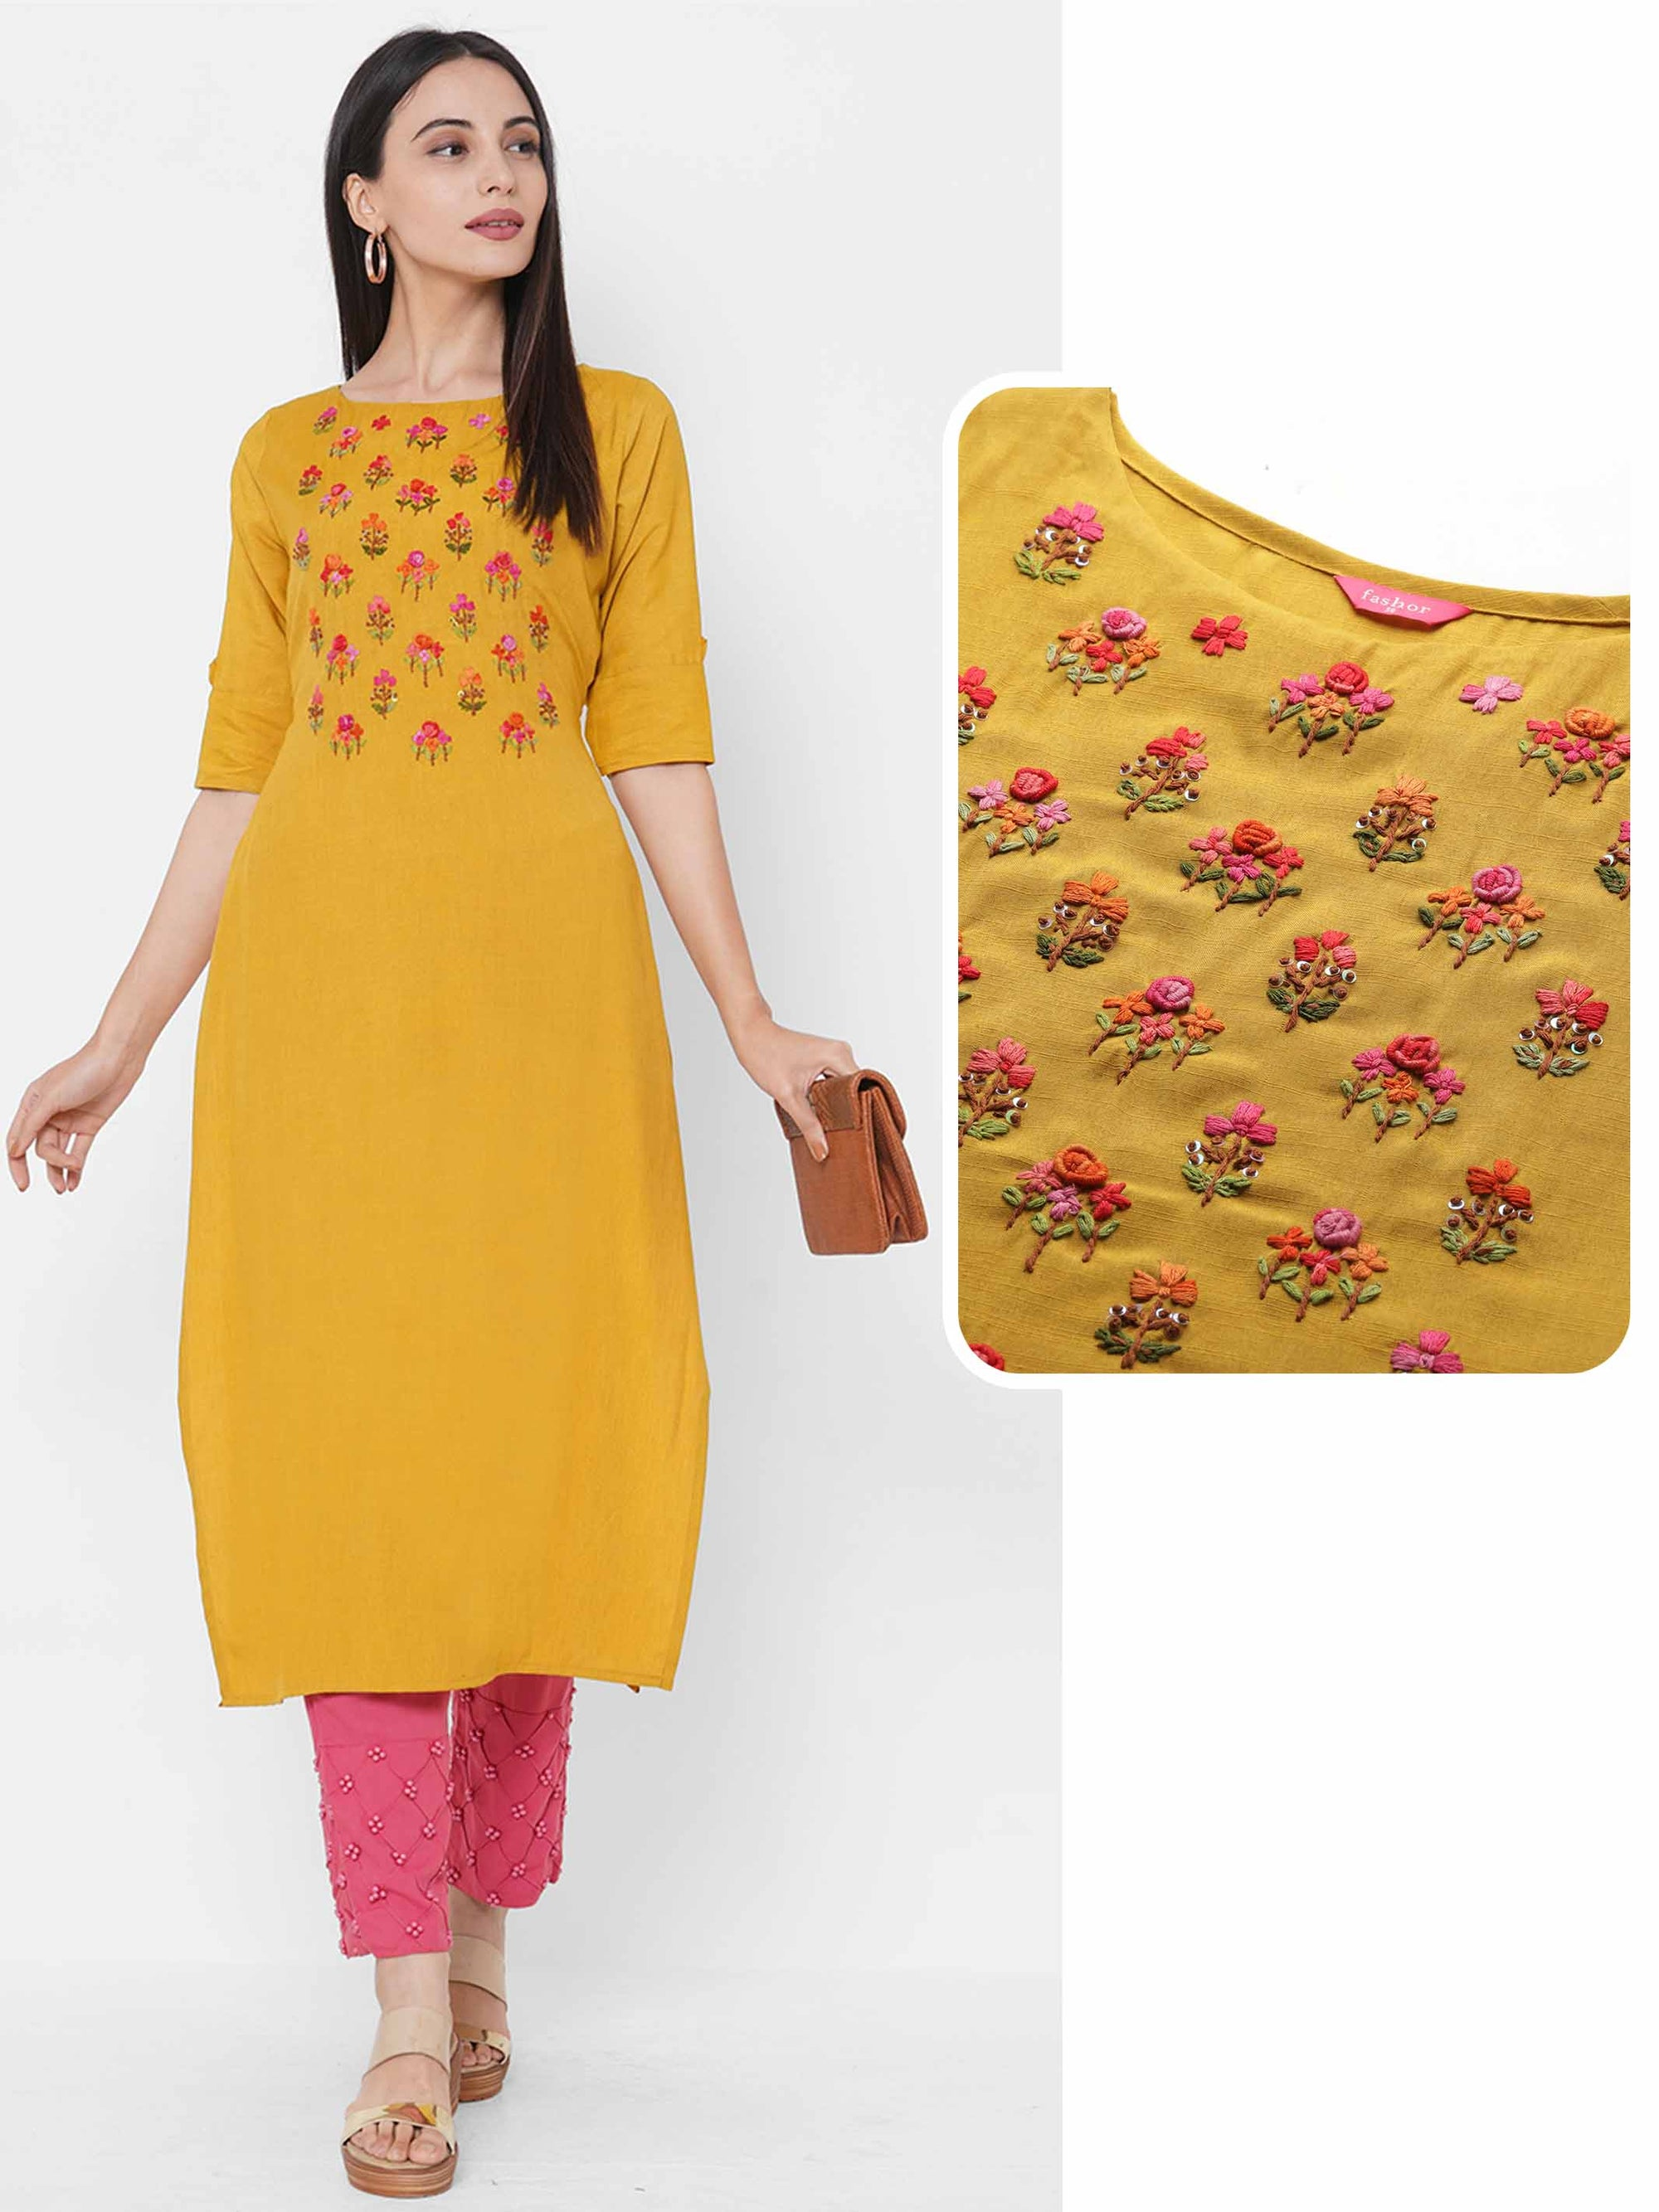 Bullion Knotted Floral Embroidered Yoke Straight Kurta - Mustard